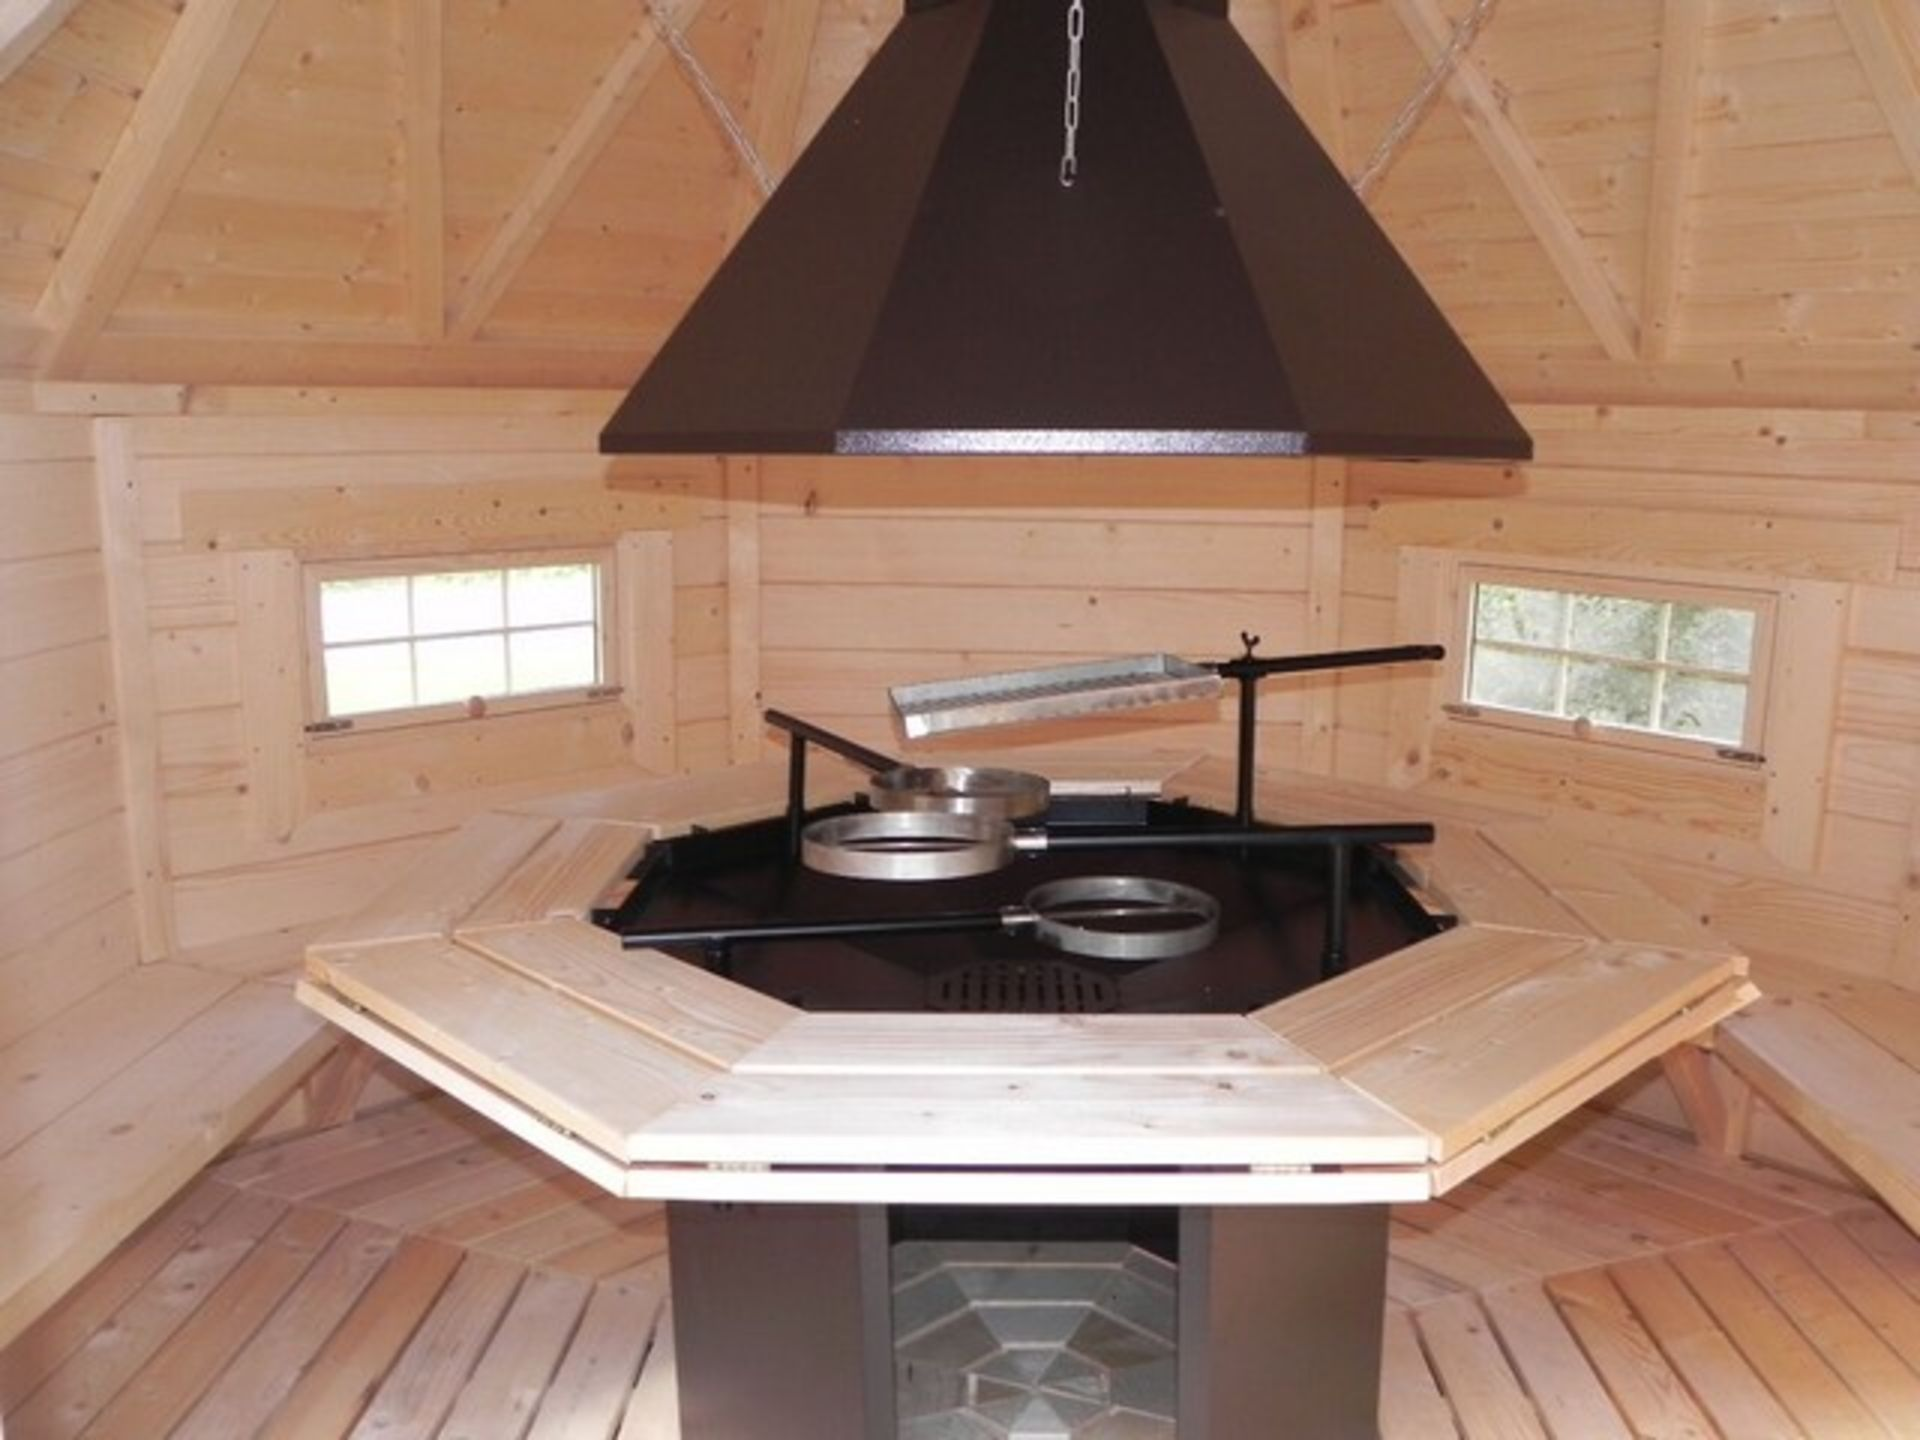 Lot 18051 - V Brand New Eight Corner 6.9m sq Grill Cabin - Standard Grill with Cooking Platforms - Table